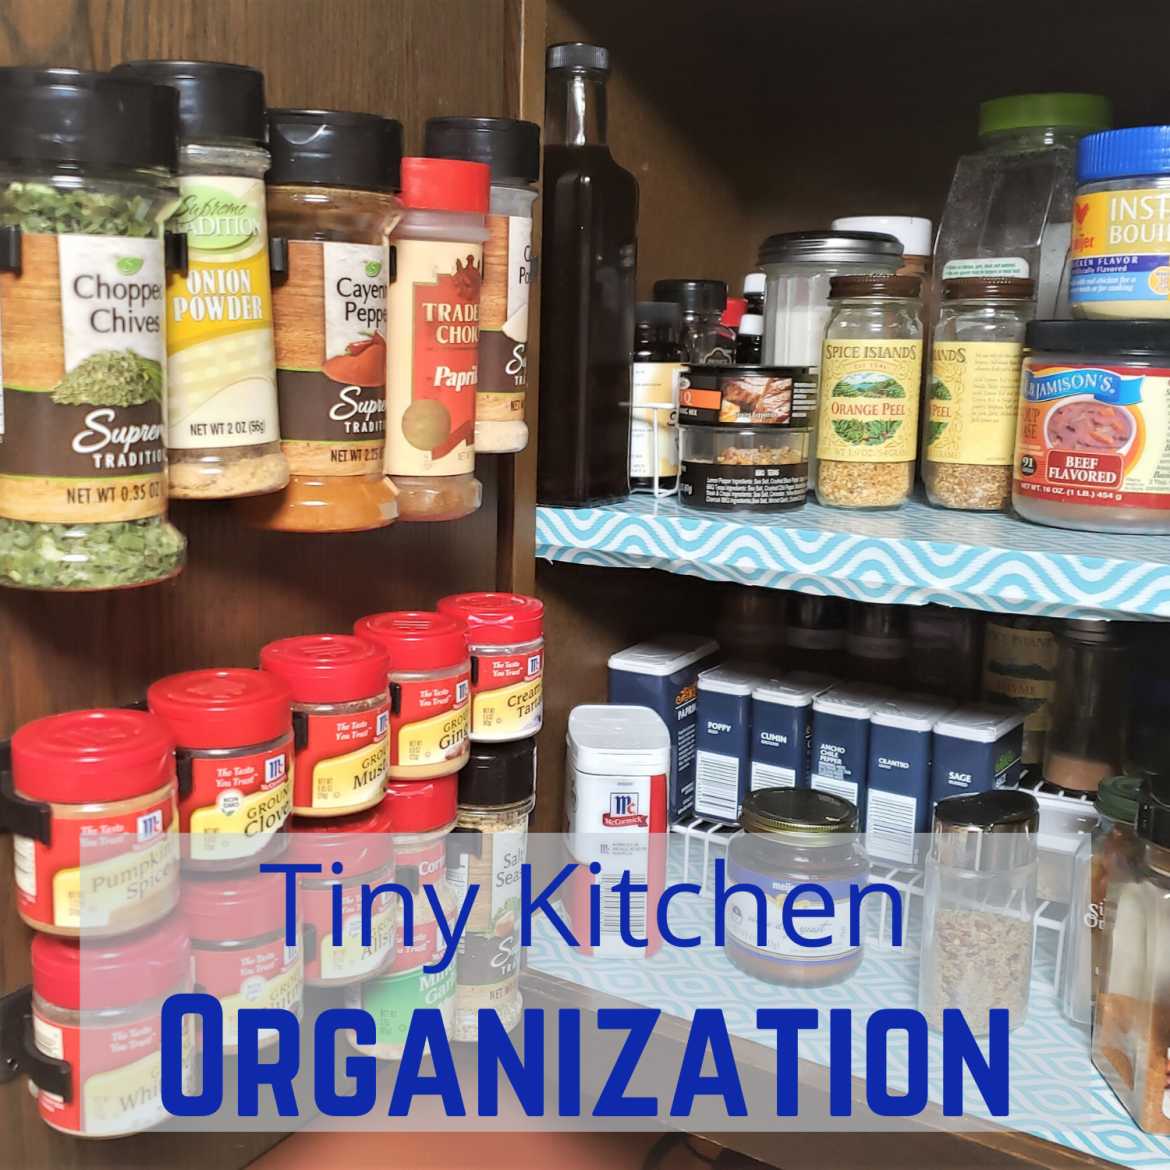 Tiny Kitchen Organization